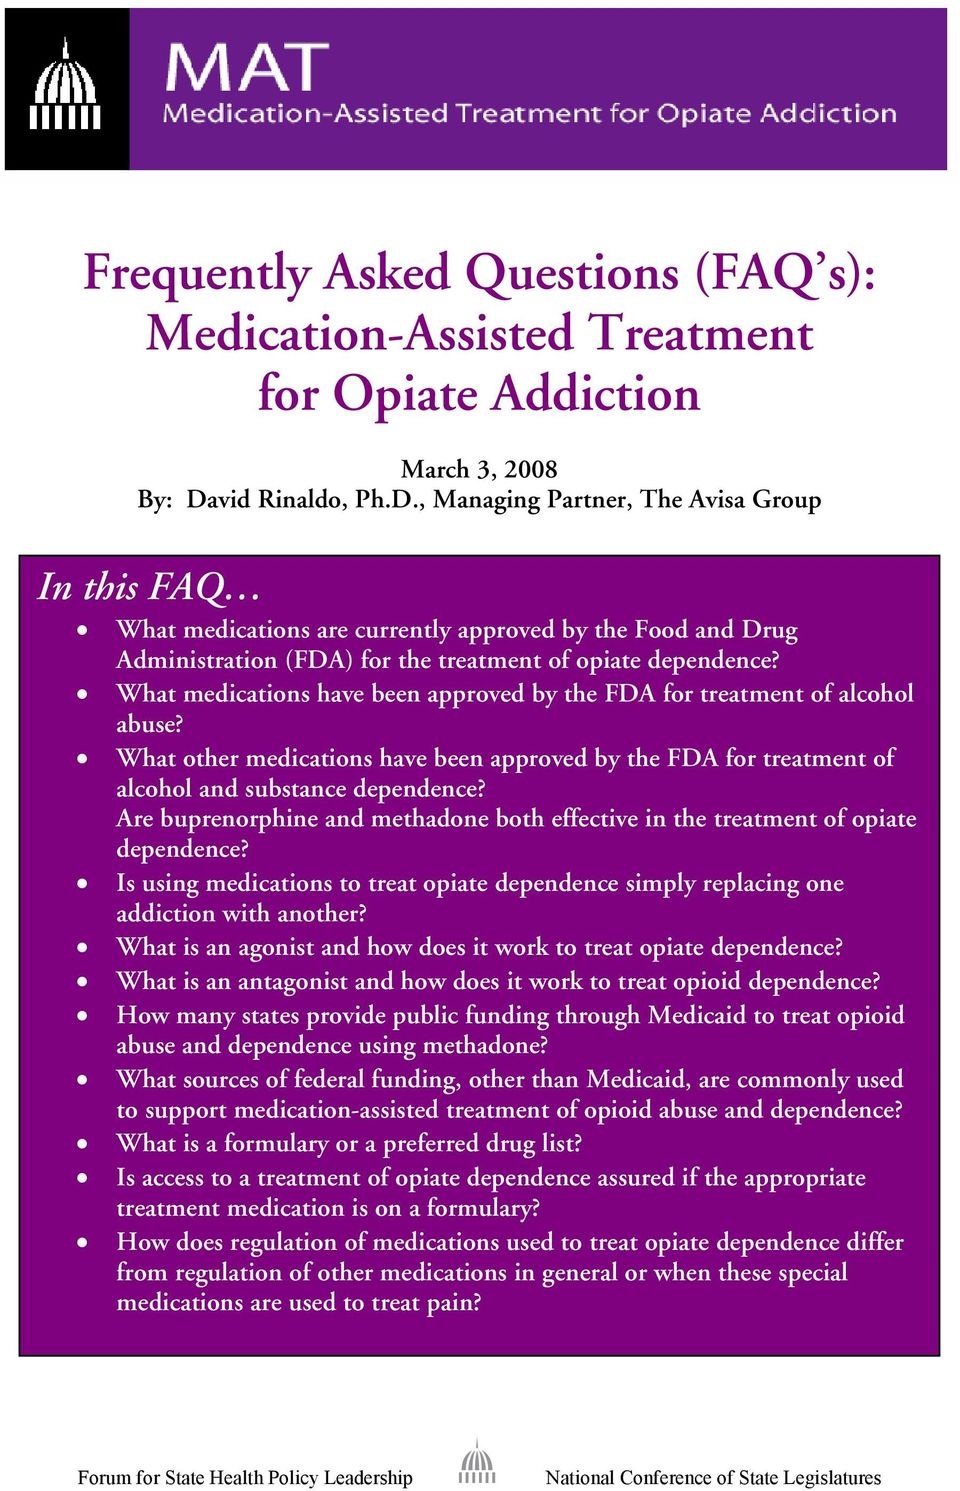 What medications have been approved by the FDA for treatment of alcohol abuse? What other medications have been approved by the FDA for treatment of alcohol and substance dependence?